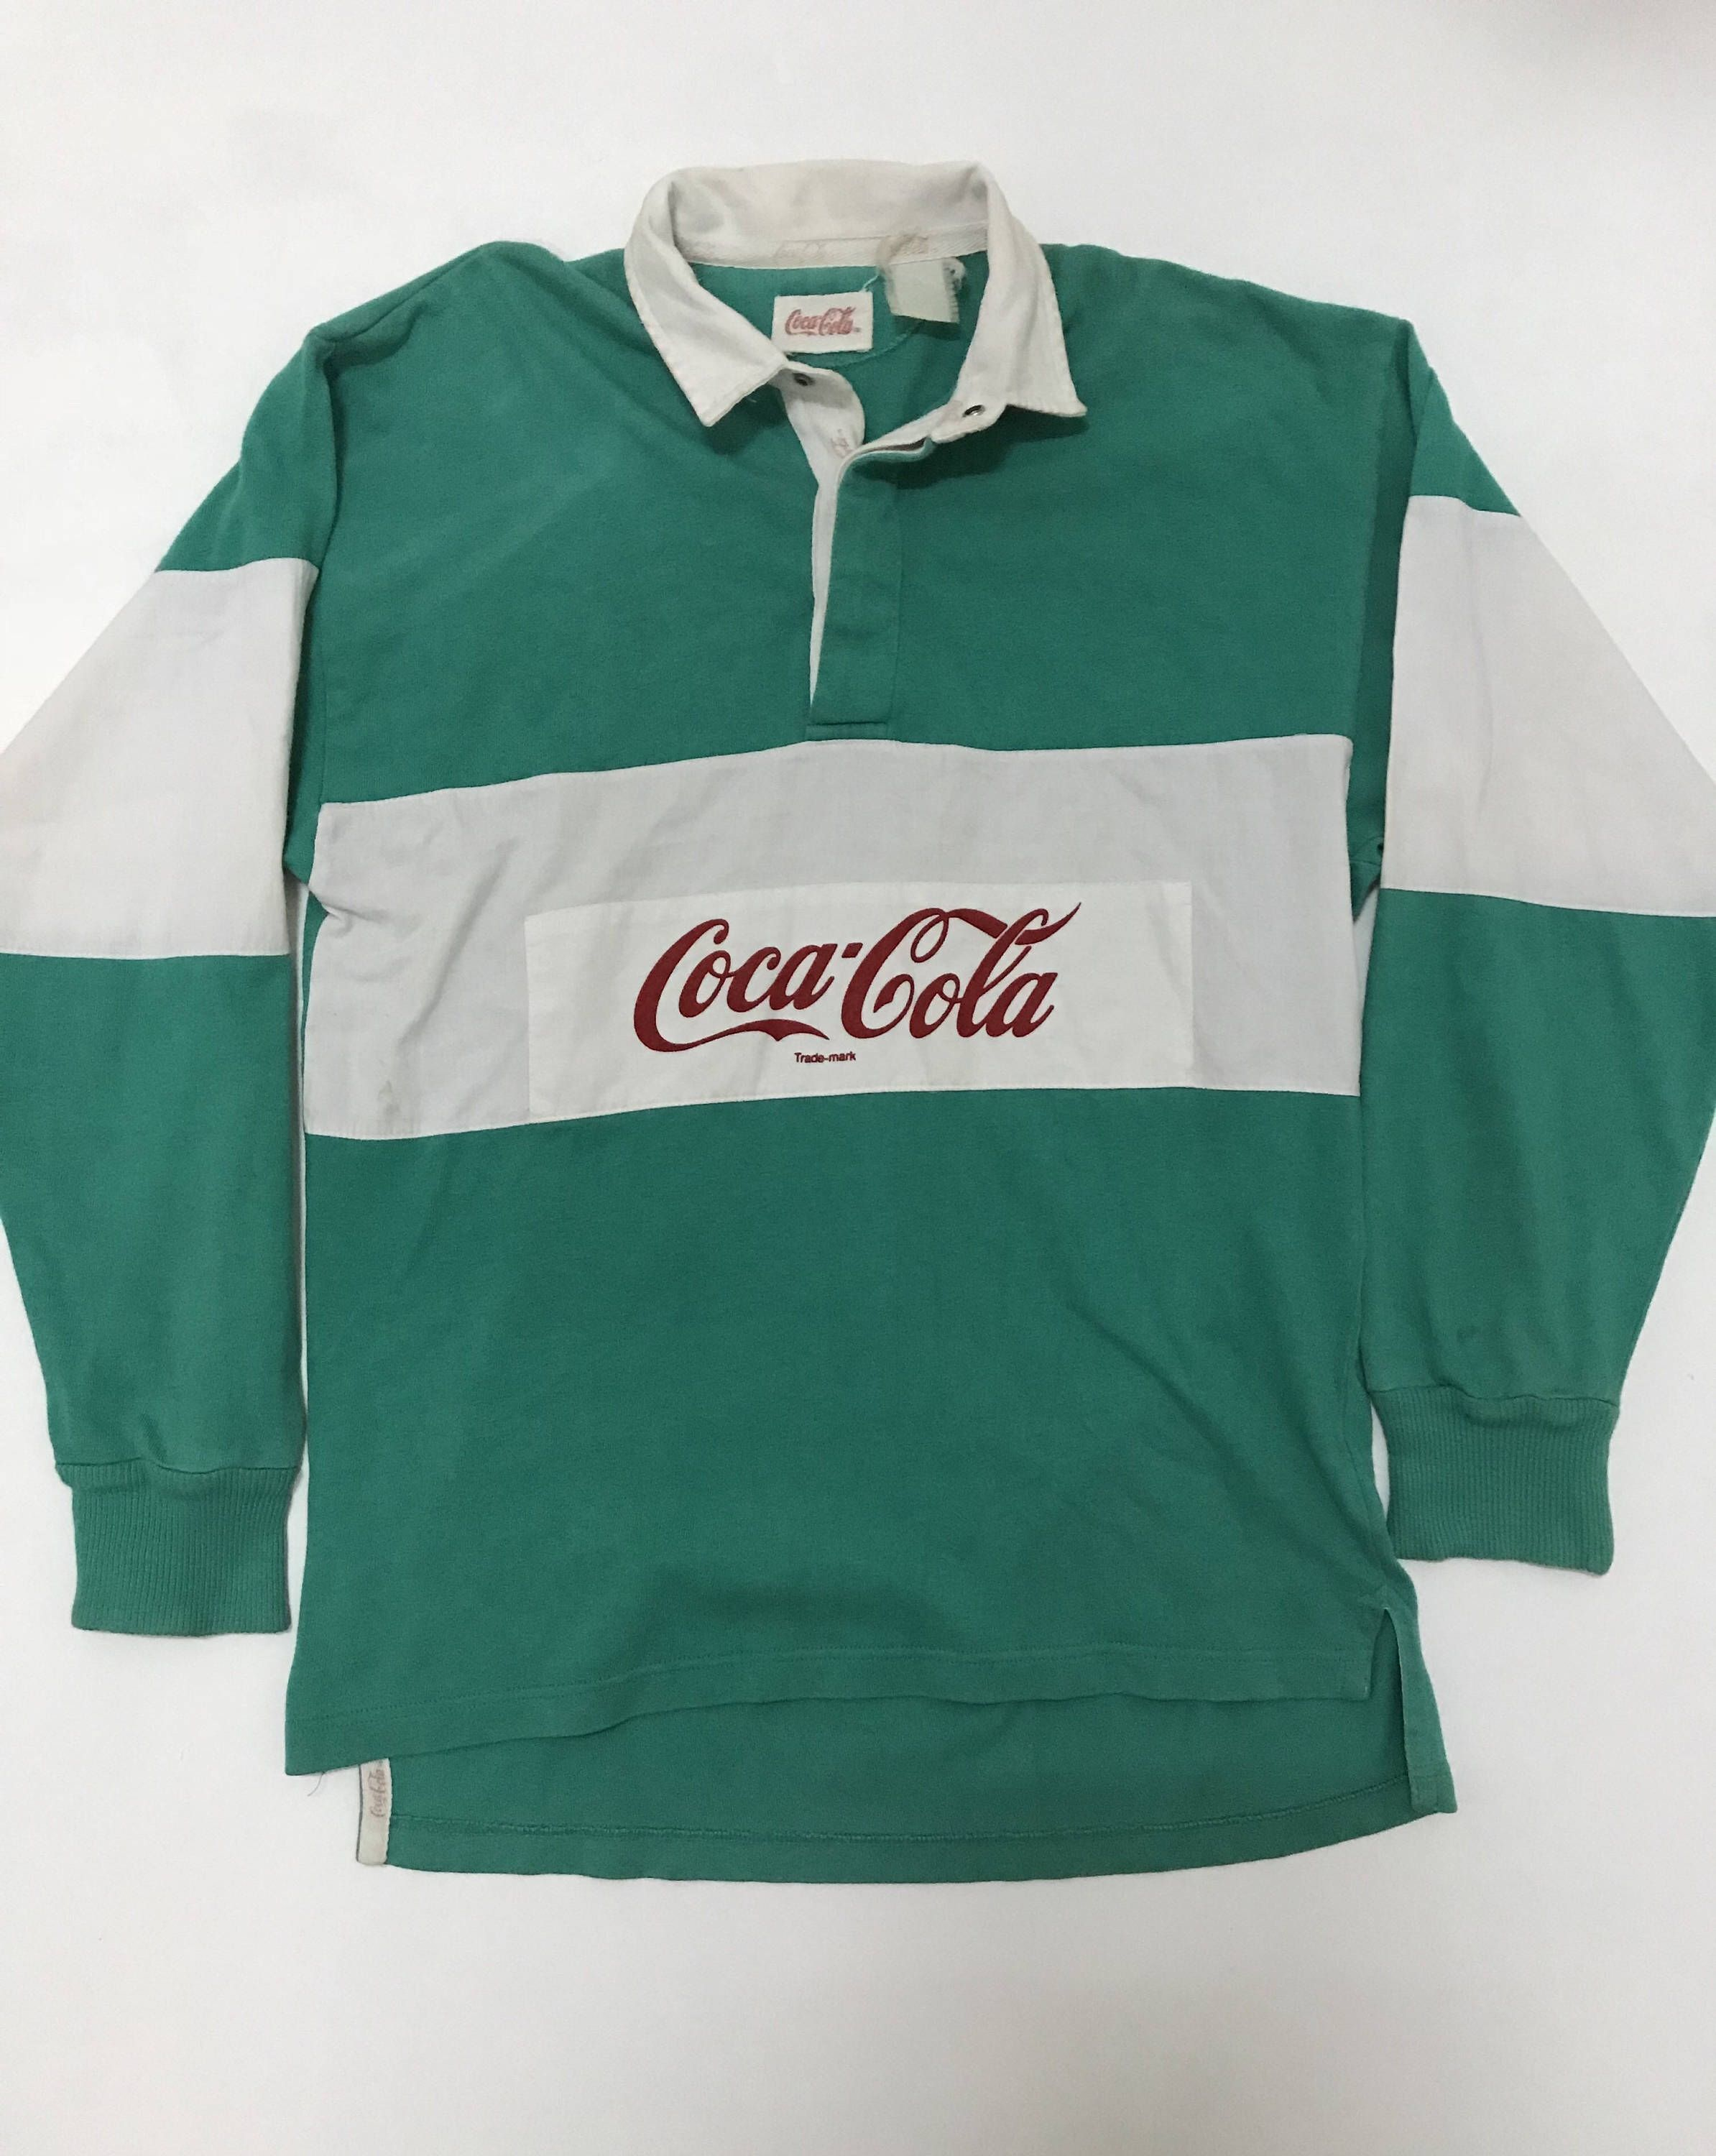 f8817987 Vintage Coca Cola Polos Shirt Stripes Rugby Shirt Rare Light Size by  clothinghunter on Etsy https